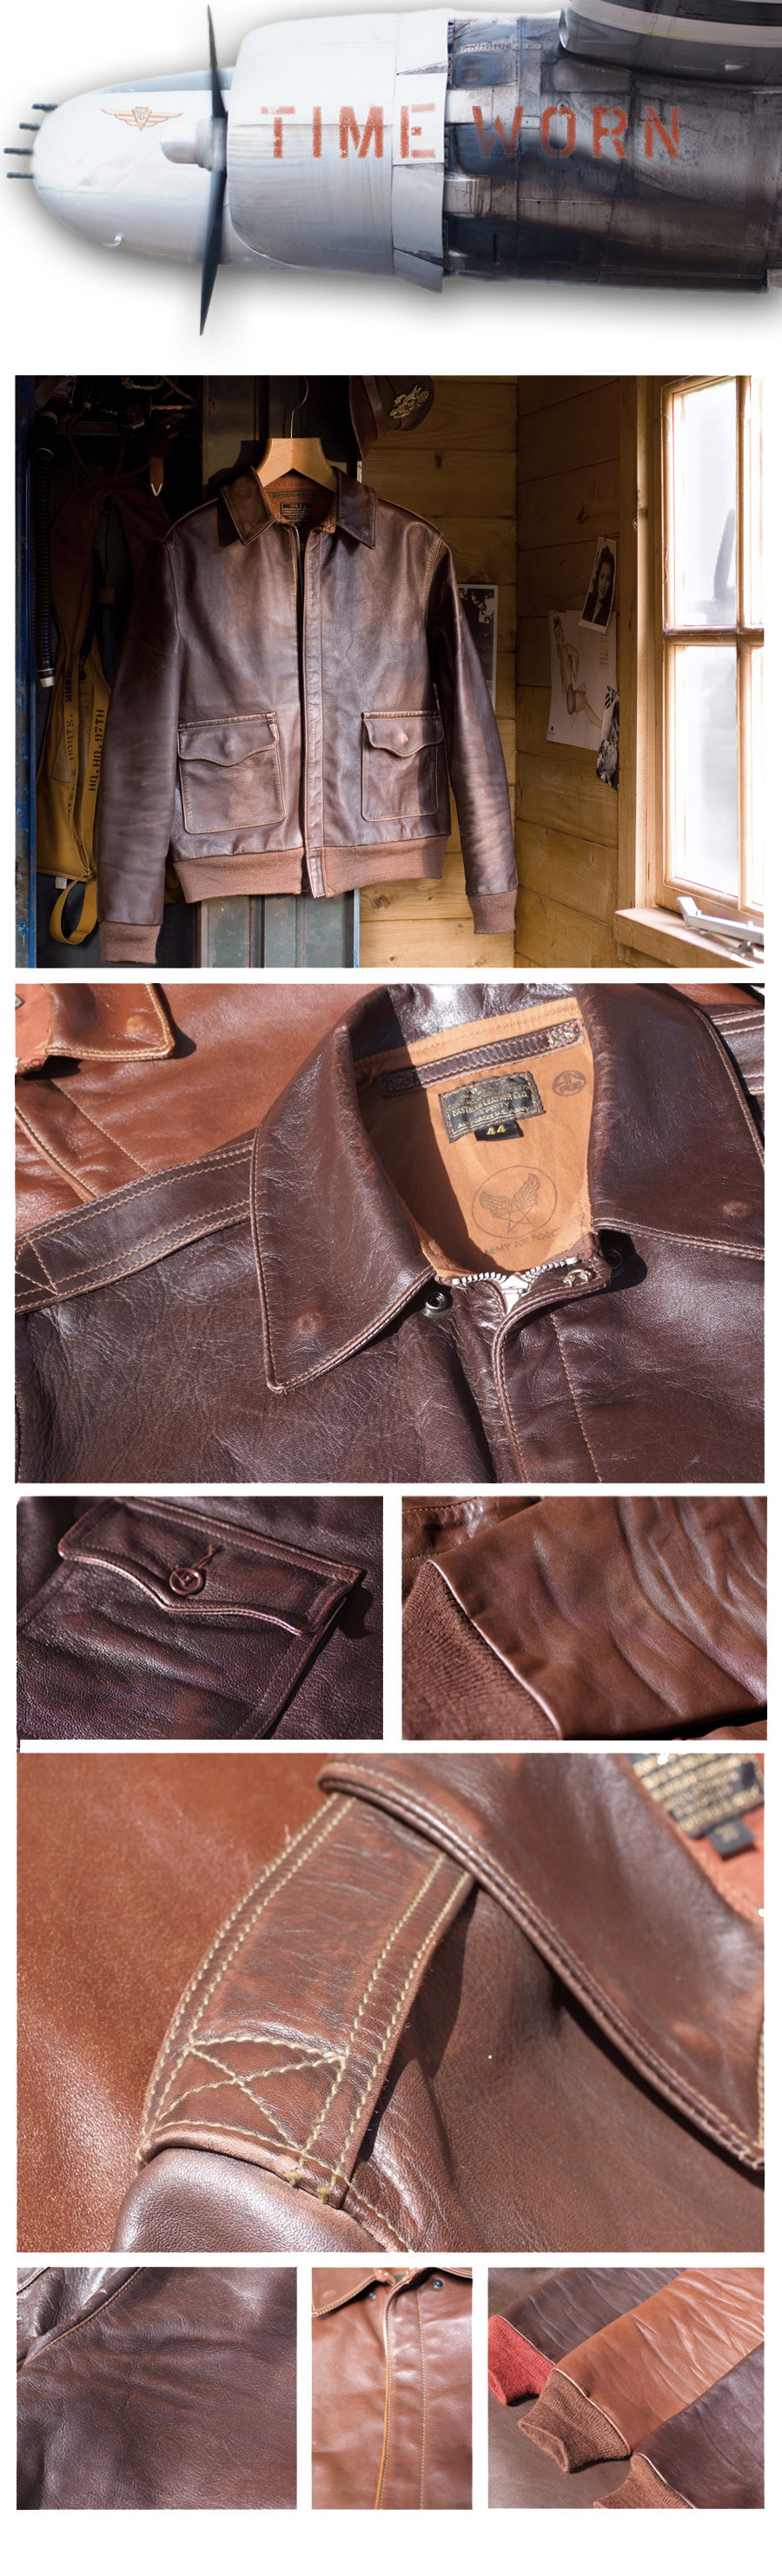 Time Worn by Eastman Leather Clothing